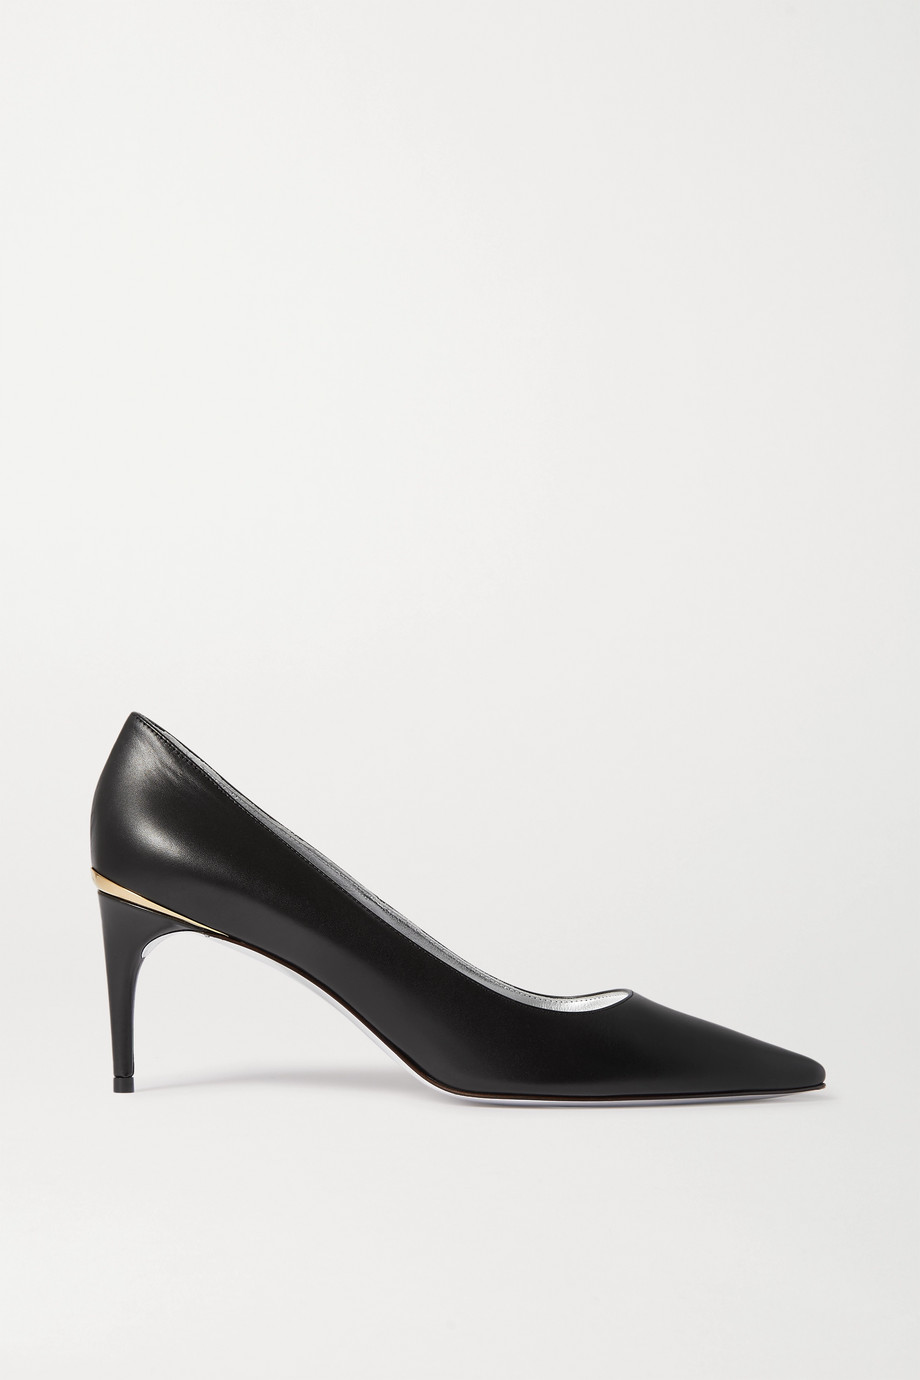 Givenchy Logo-embellished leather pumps